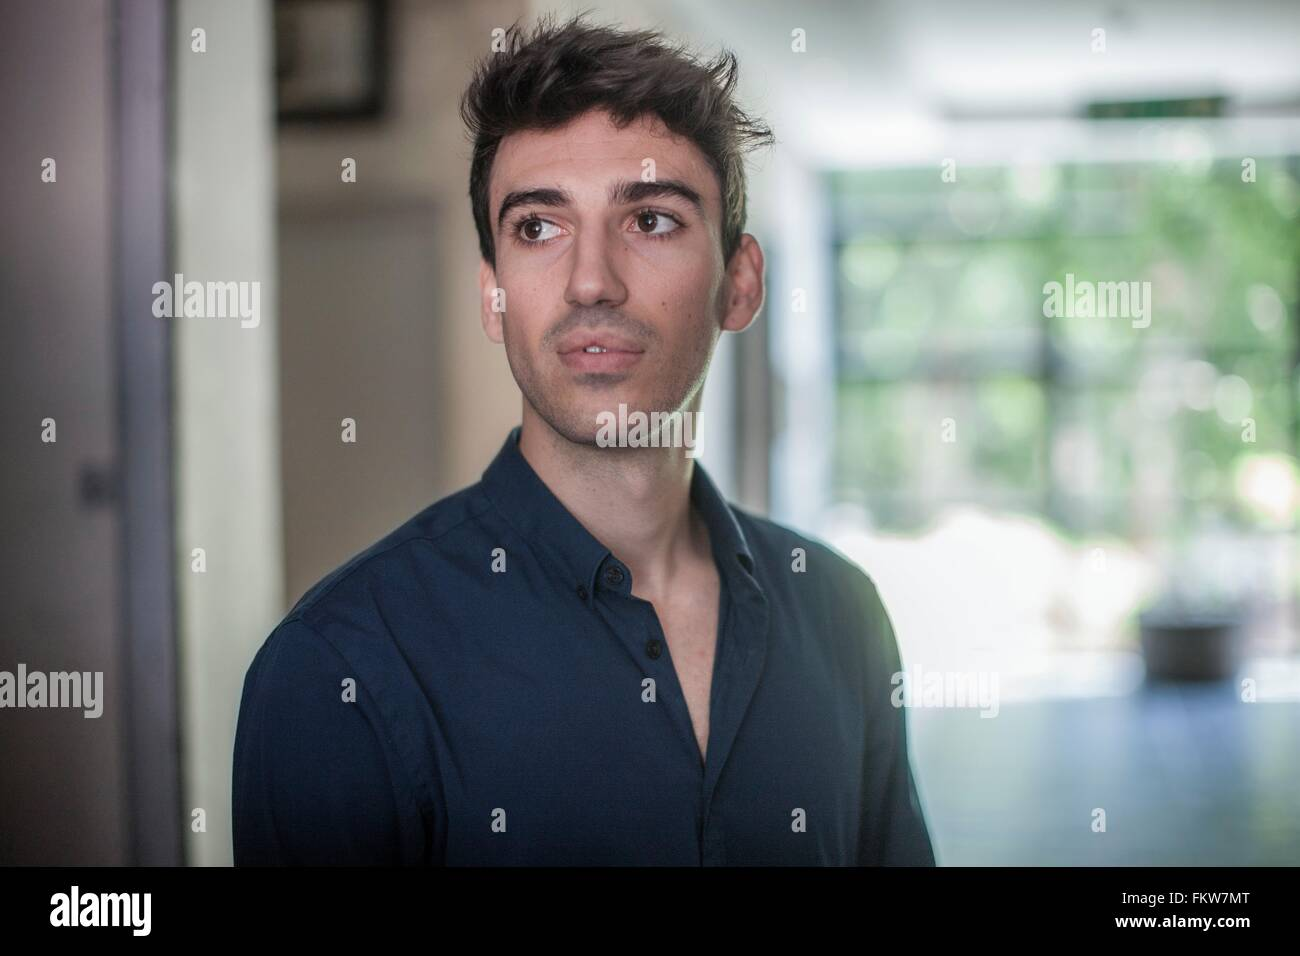 Serious young businessman in office Photo Stock